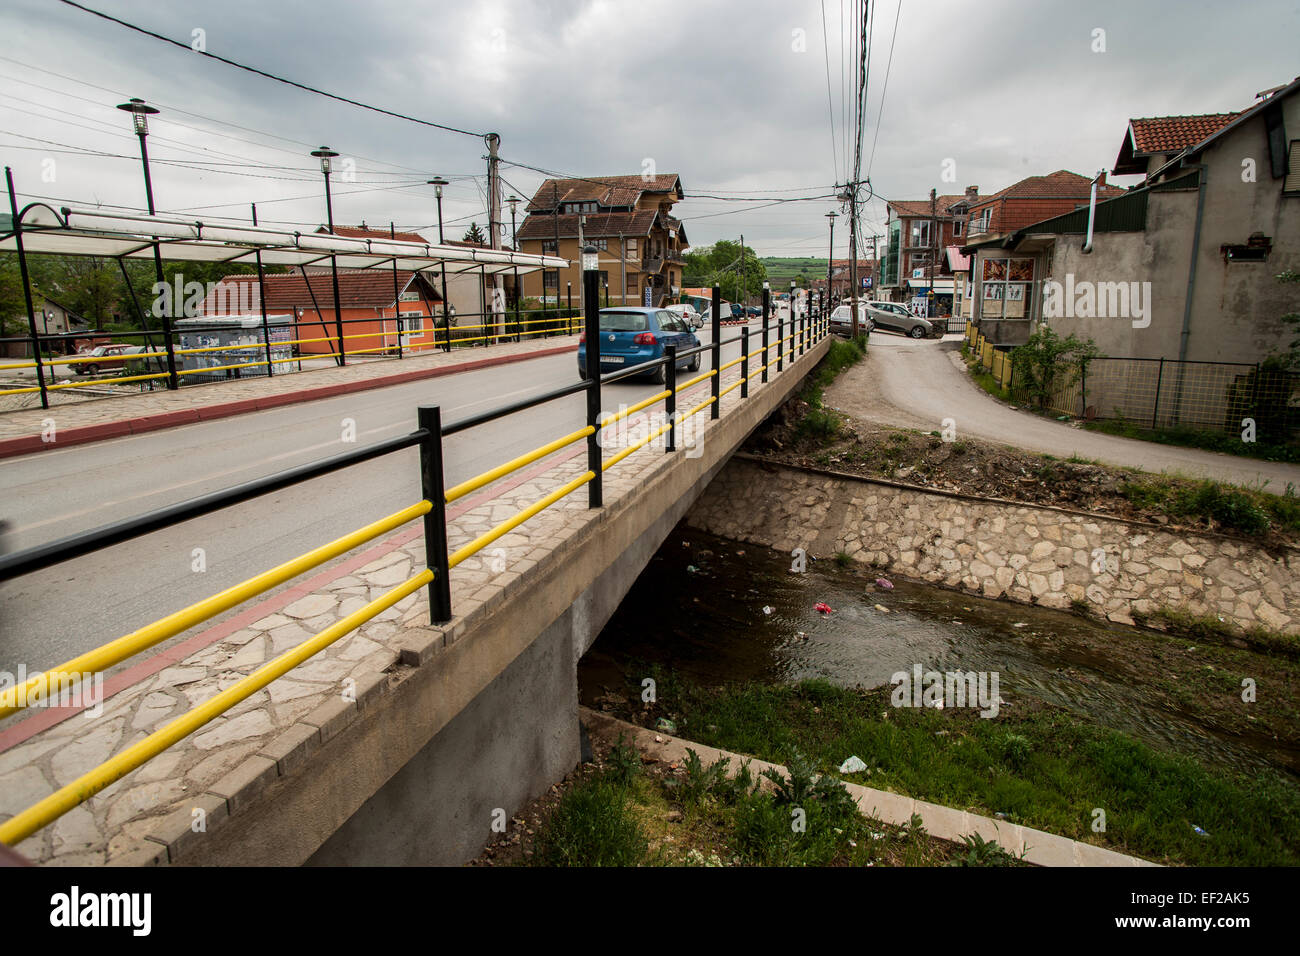 Serb enclave of Gračanica in Kosovo - Stock Image